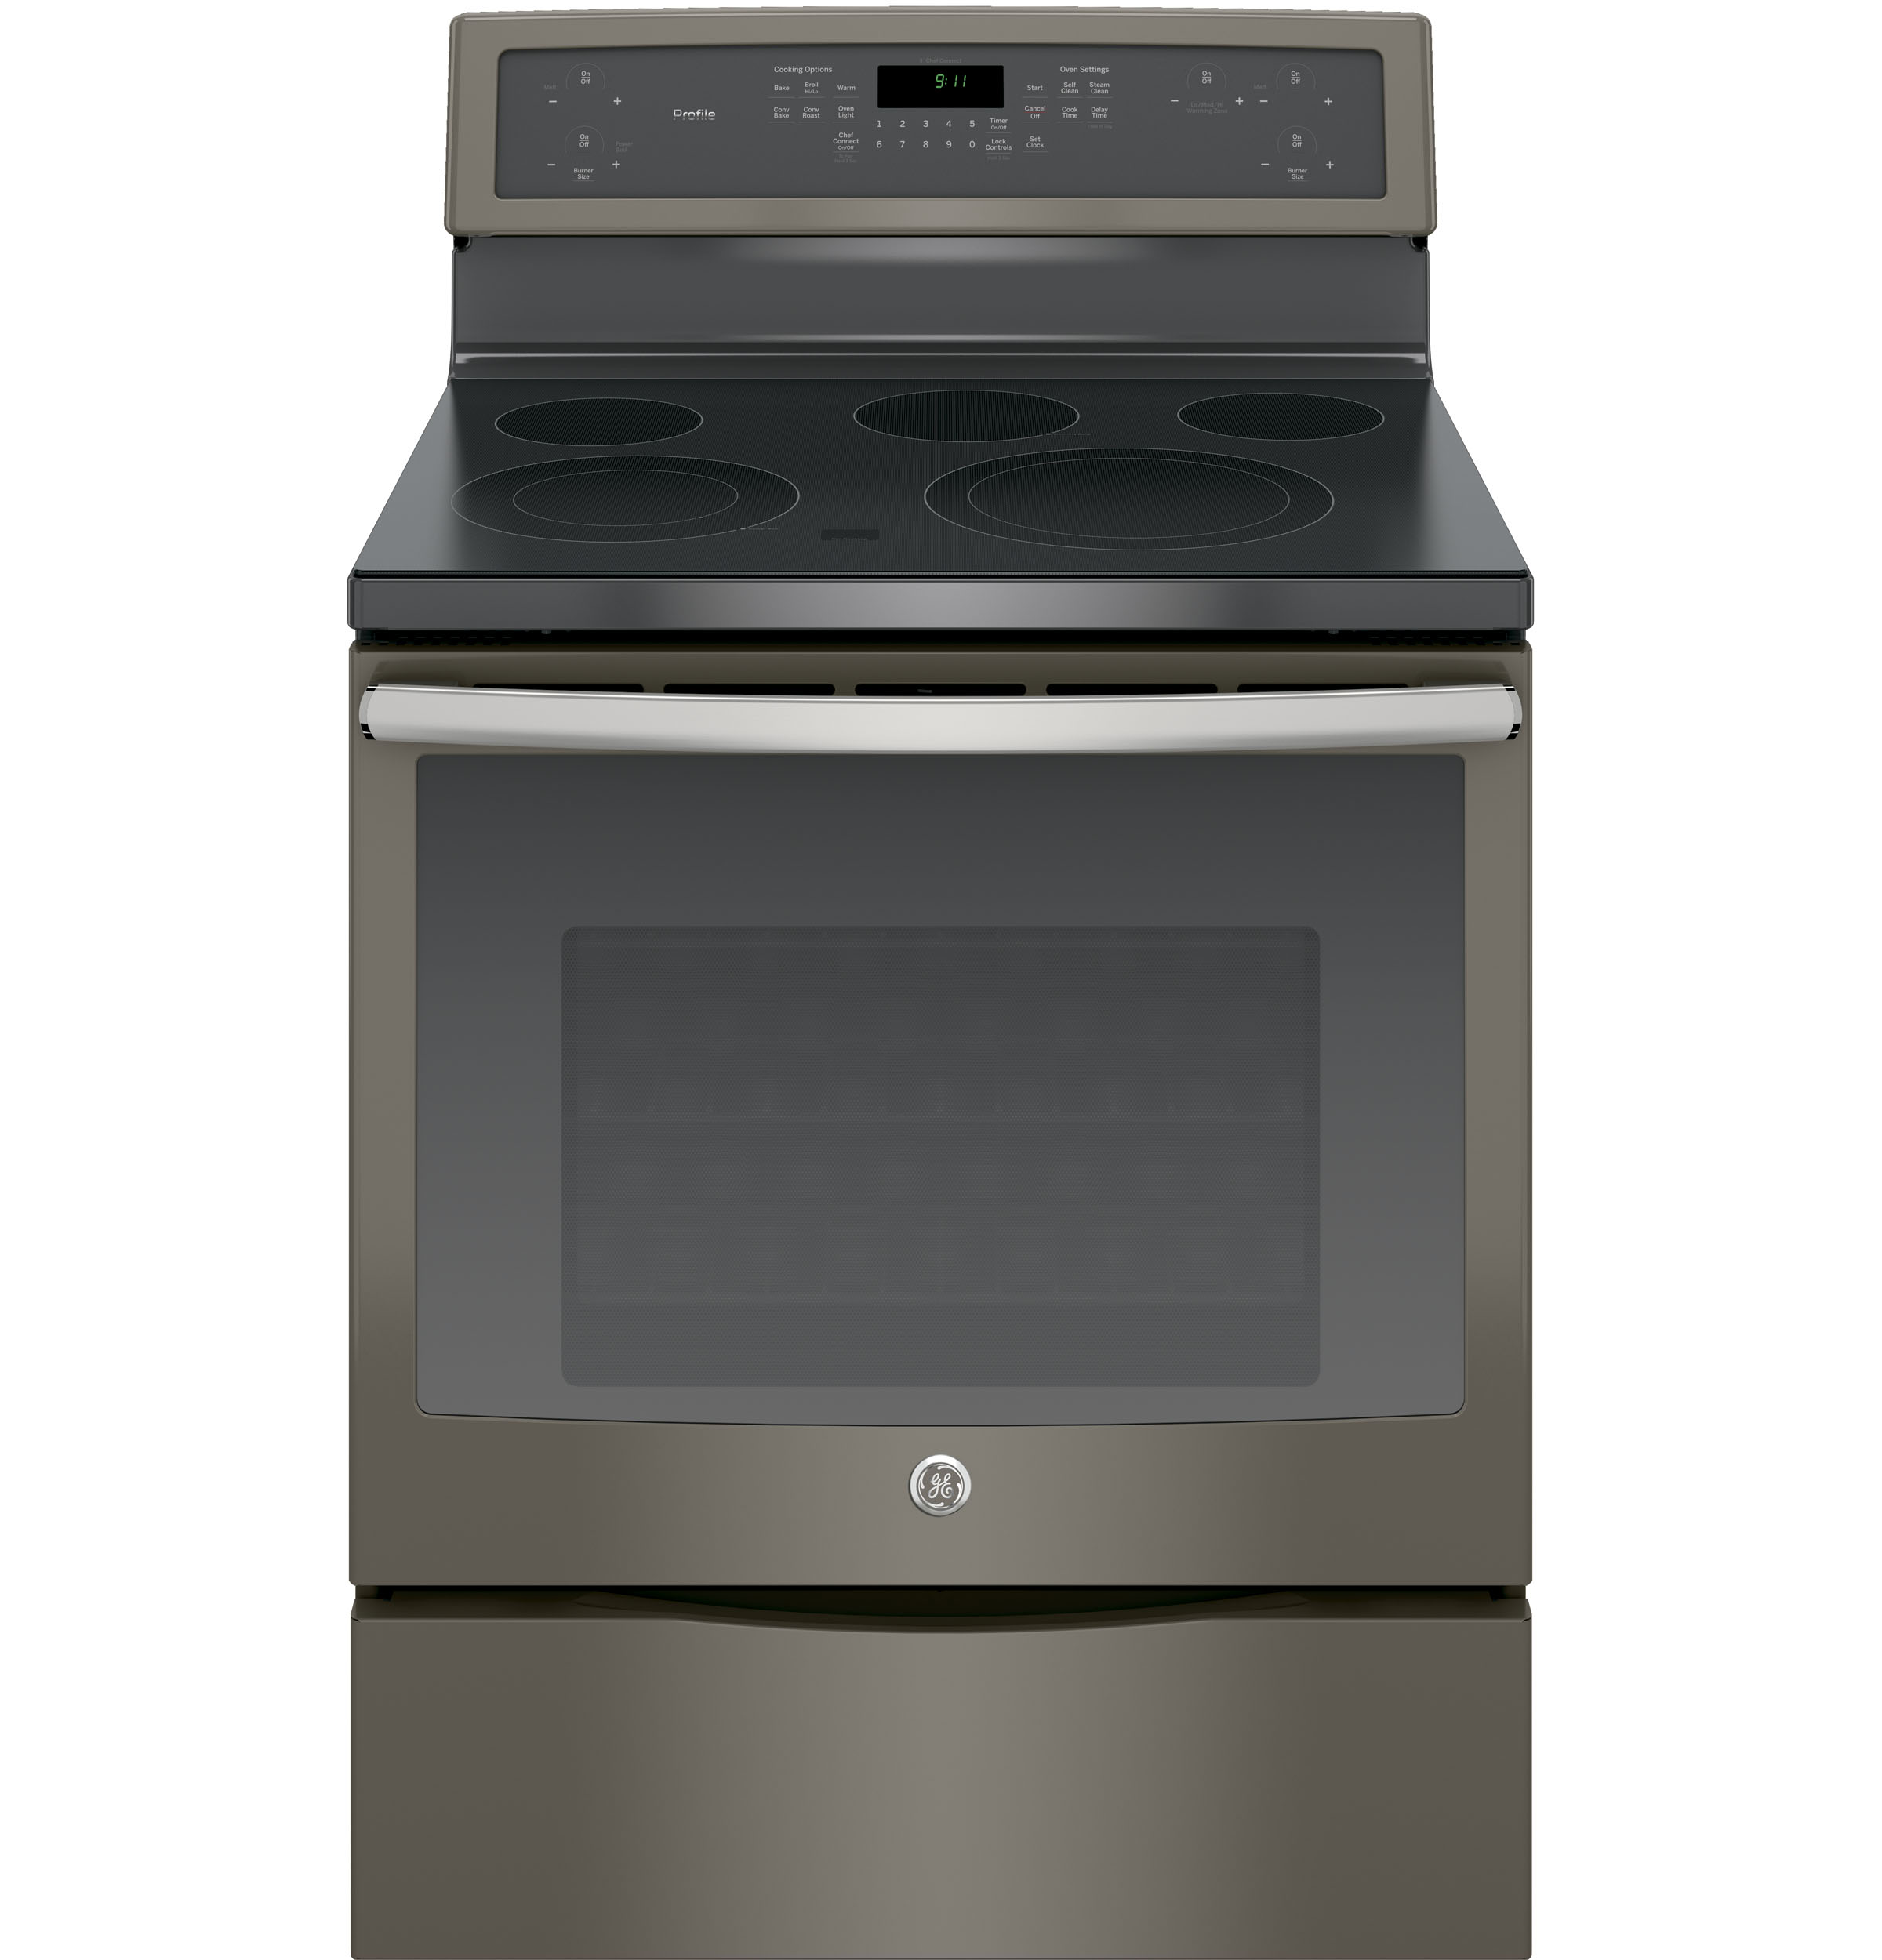 "Model: PB911EJES | GE Profile GE Profile™ Series 30"" Free-Standing Electric Convection Range"